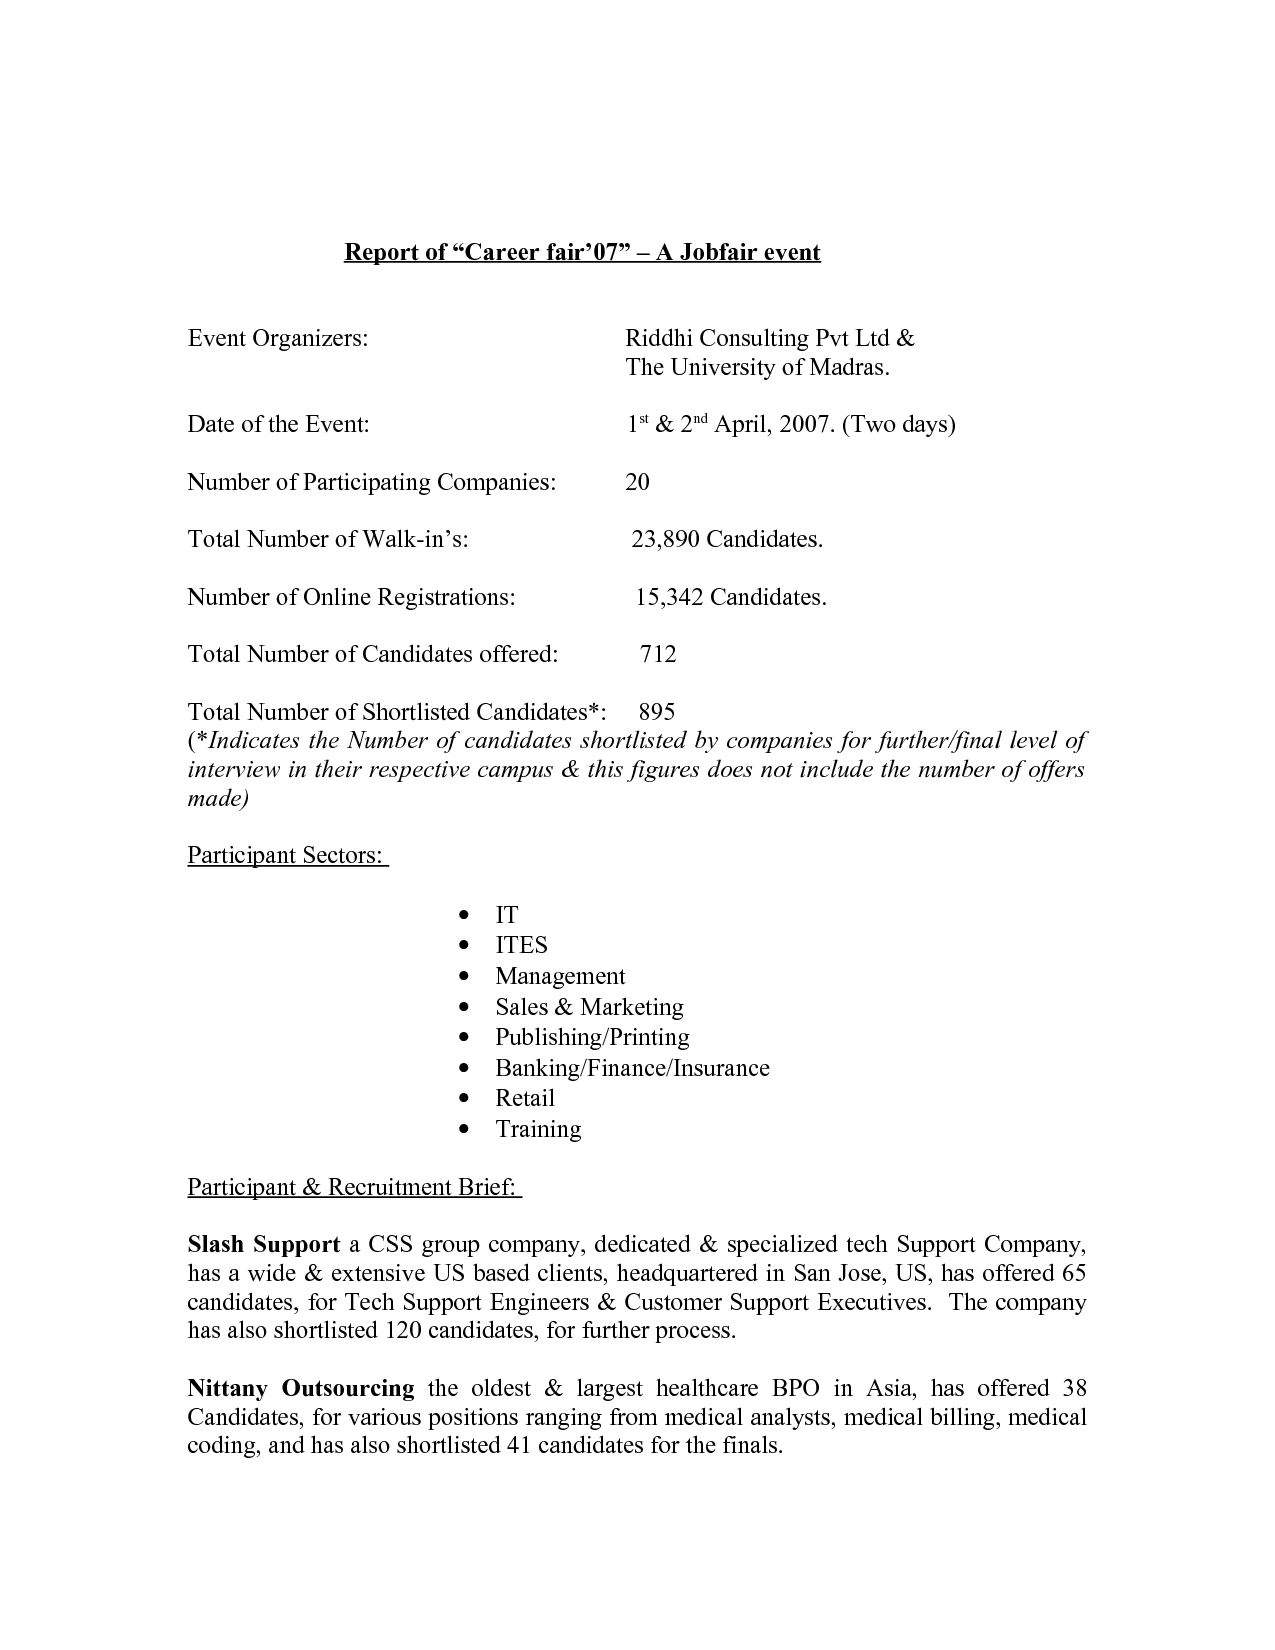 resume format for freshers free download resume format for freshers free download resume format for - How To Make A Resume Free Download